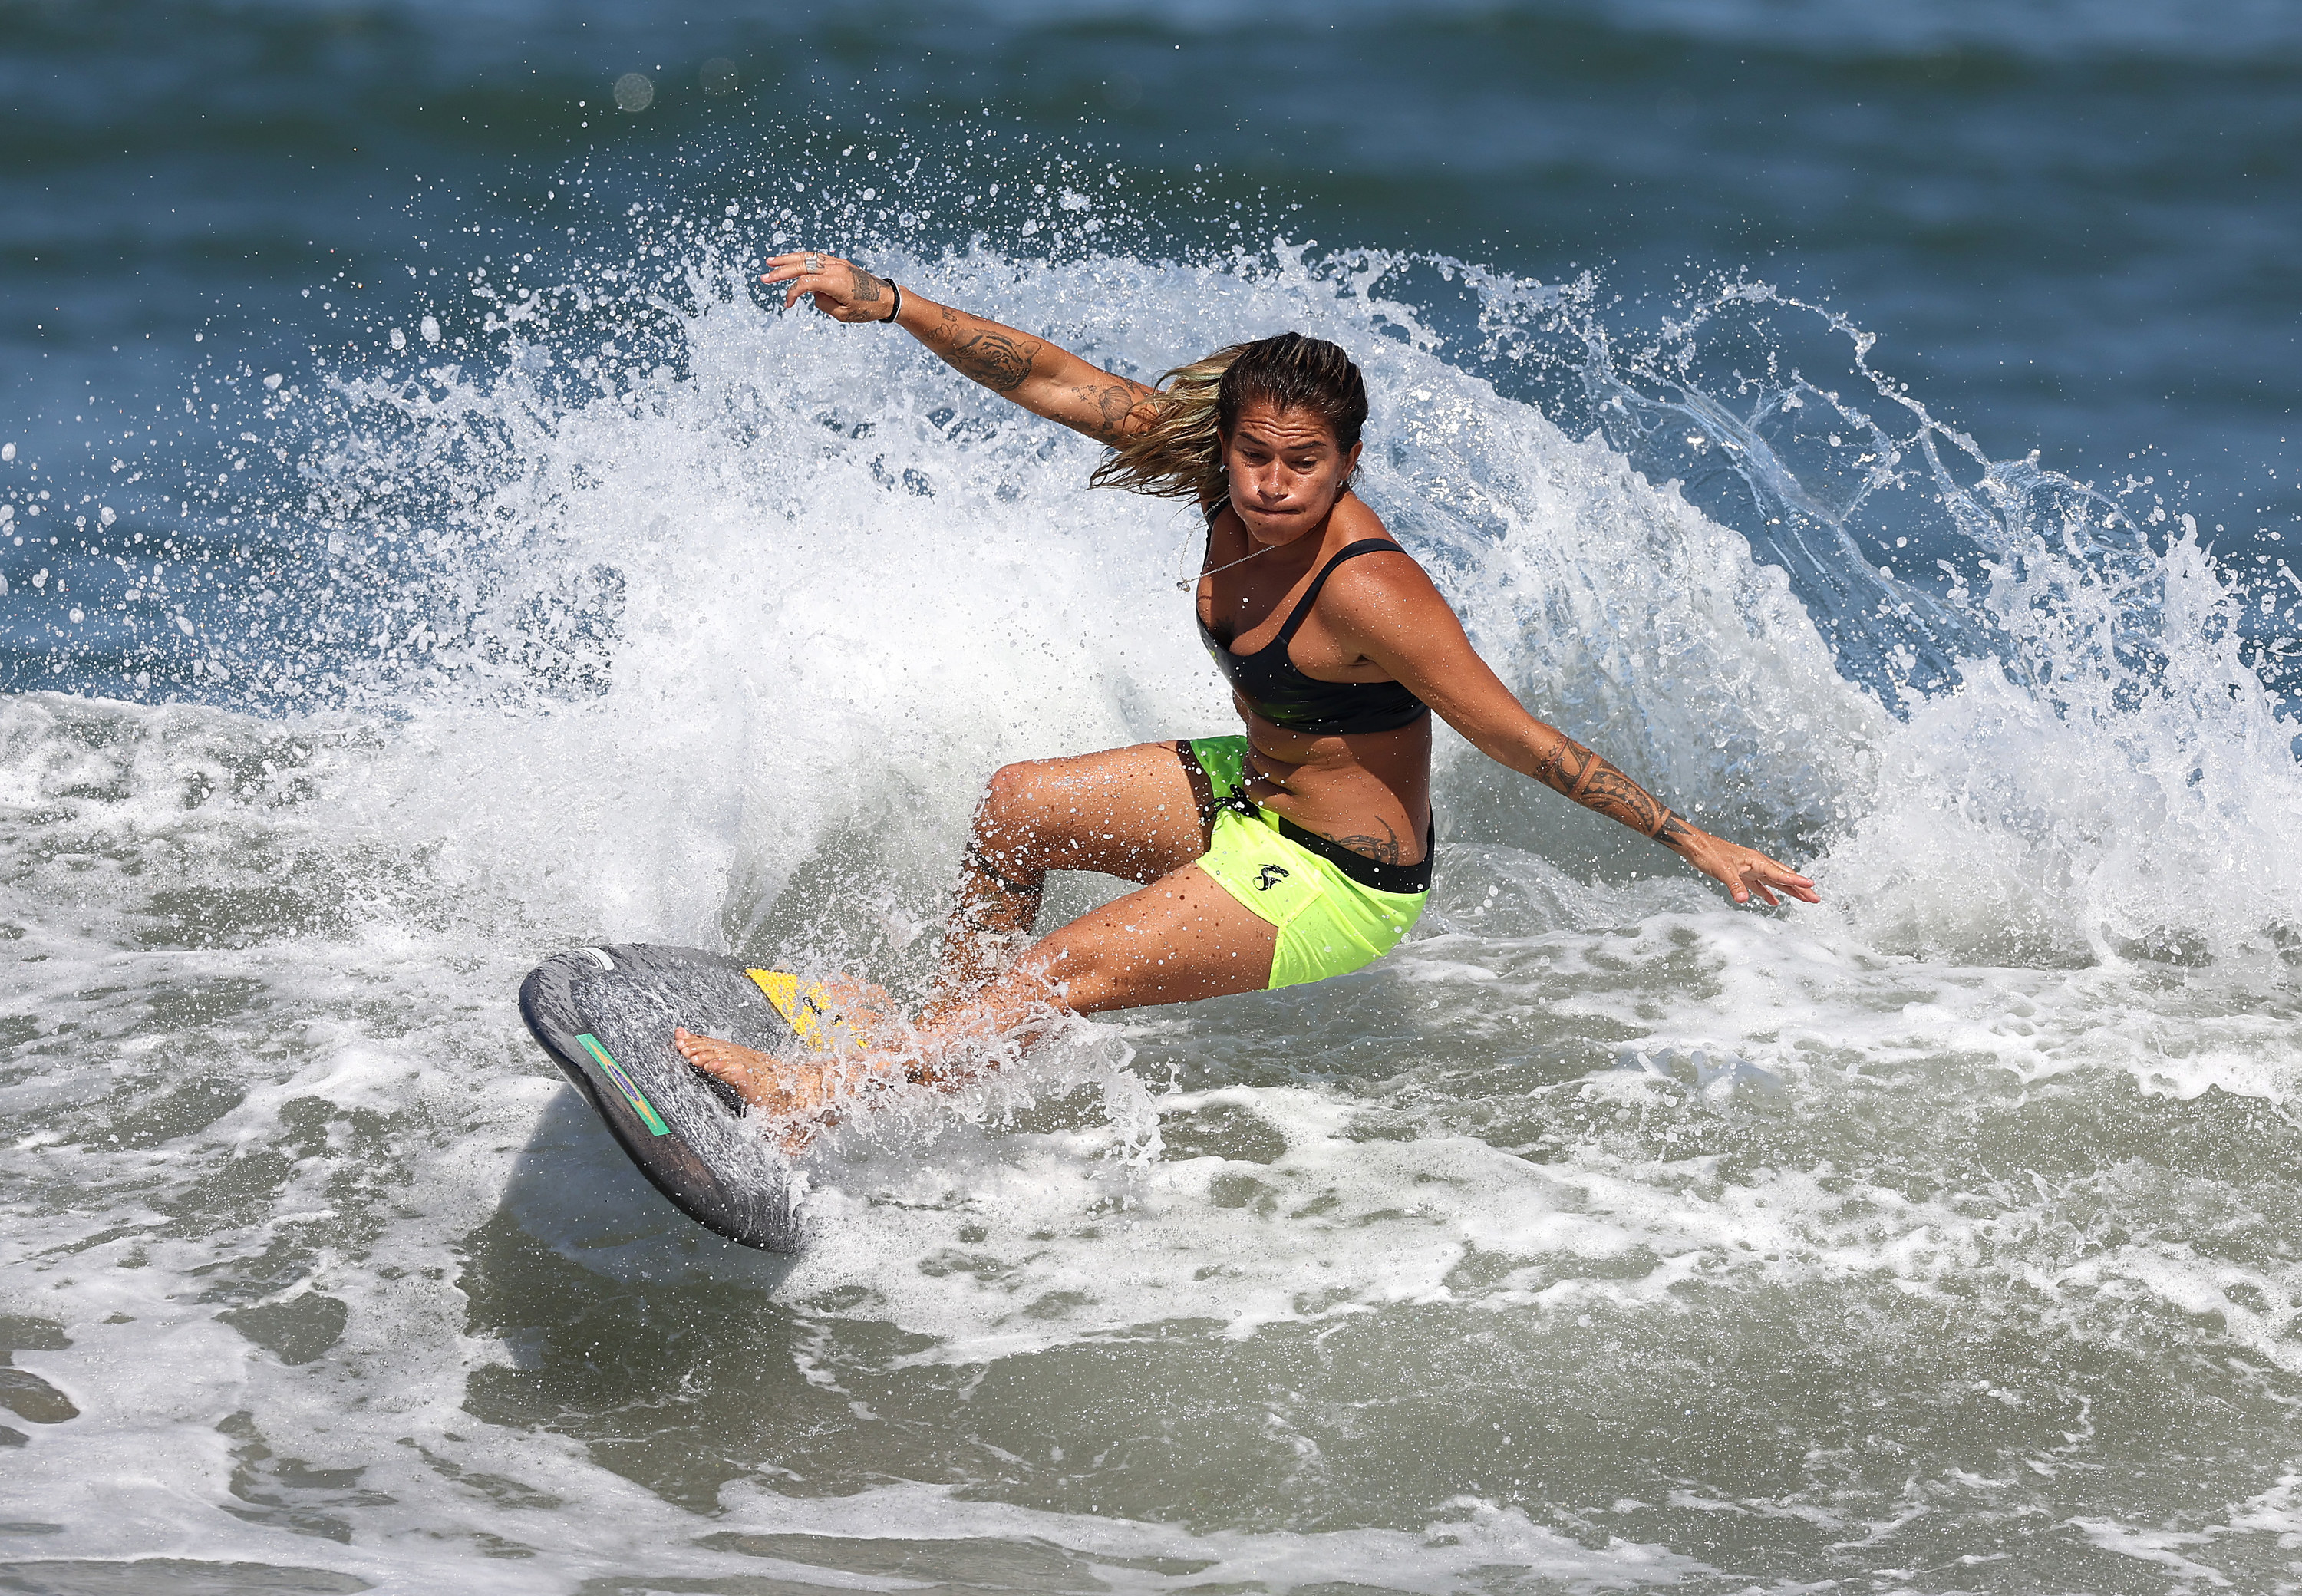 Silvana catching a wave and practicing in Japan